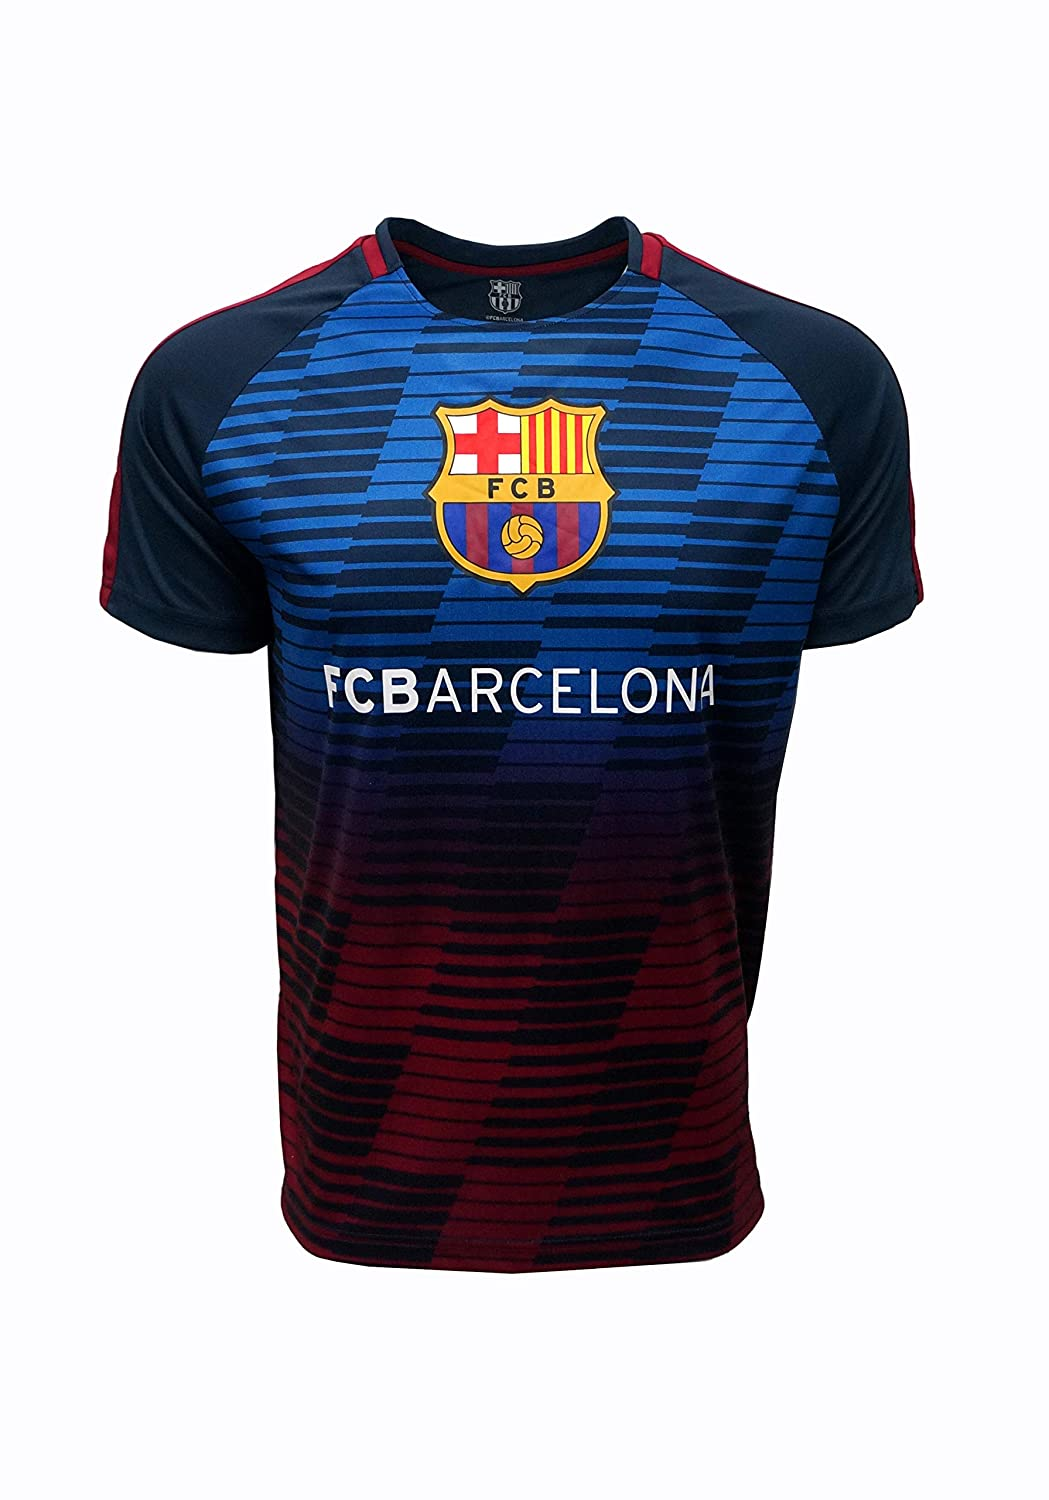 502c84abe0d Amazon.com   FC BARCELONA Official Merchandise by HKY Sportswear Men s  Printed Front Raglan Jersey   Clothing